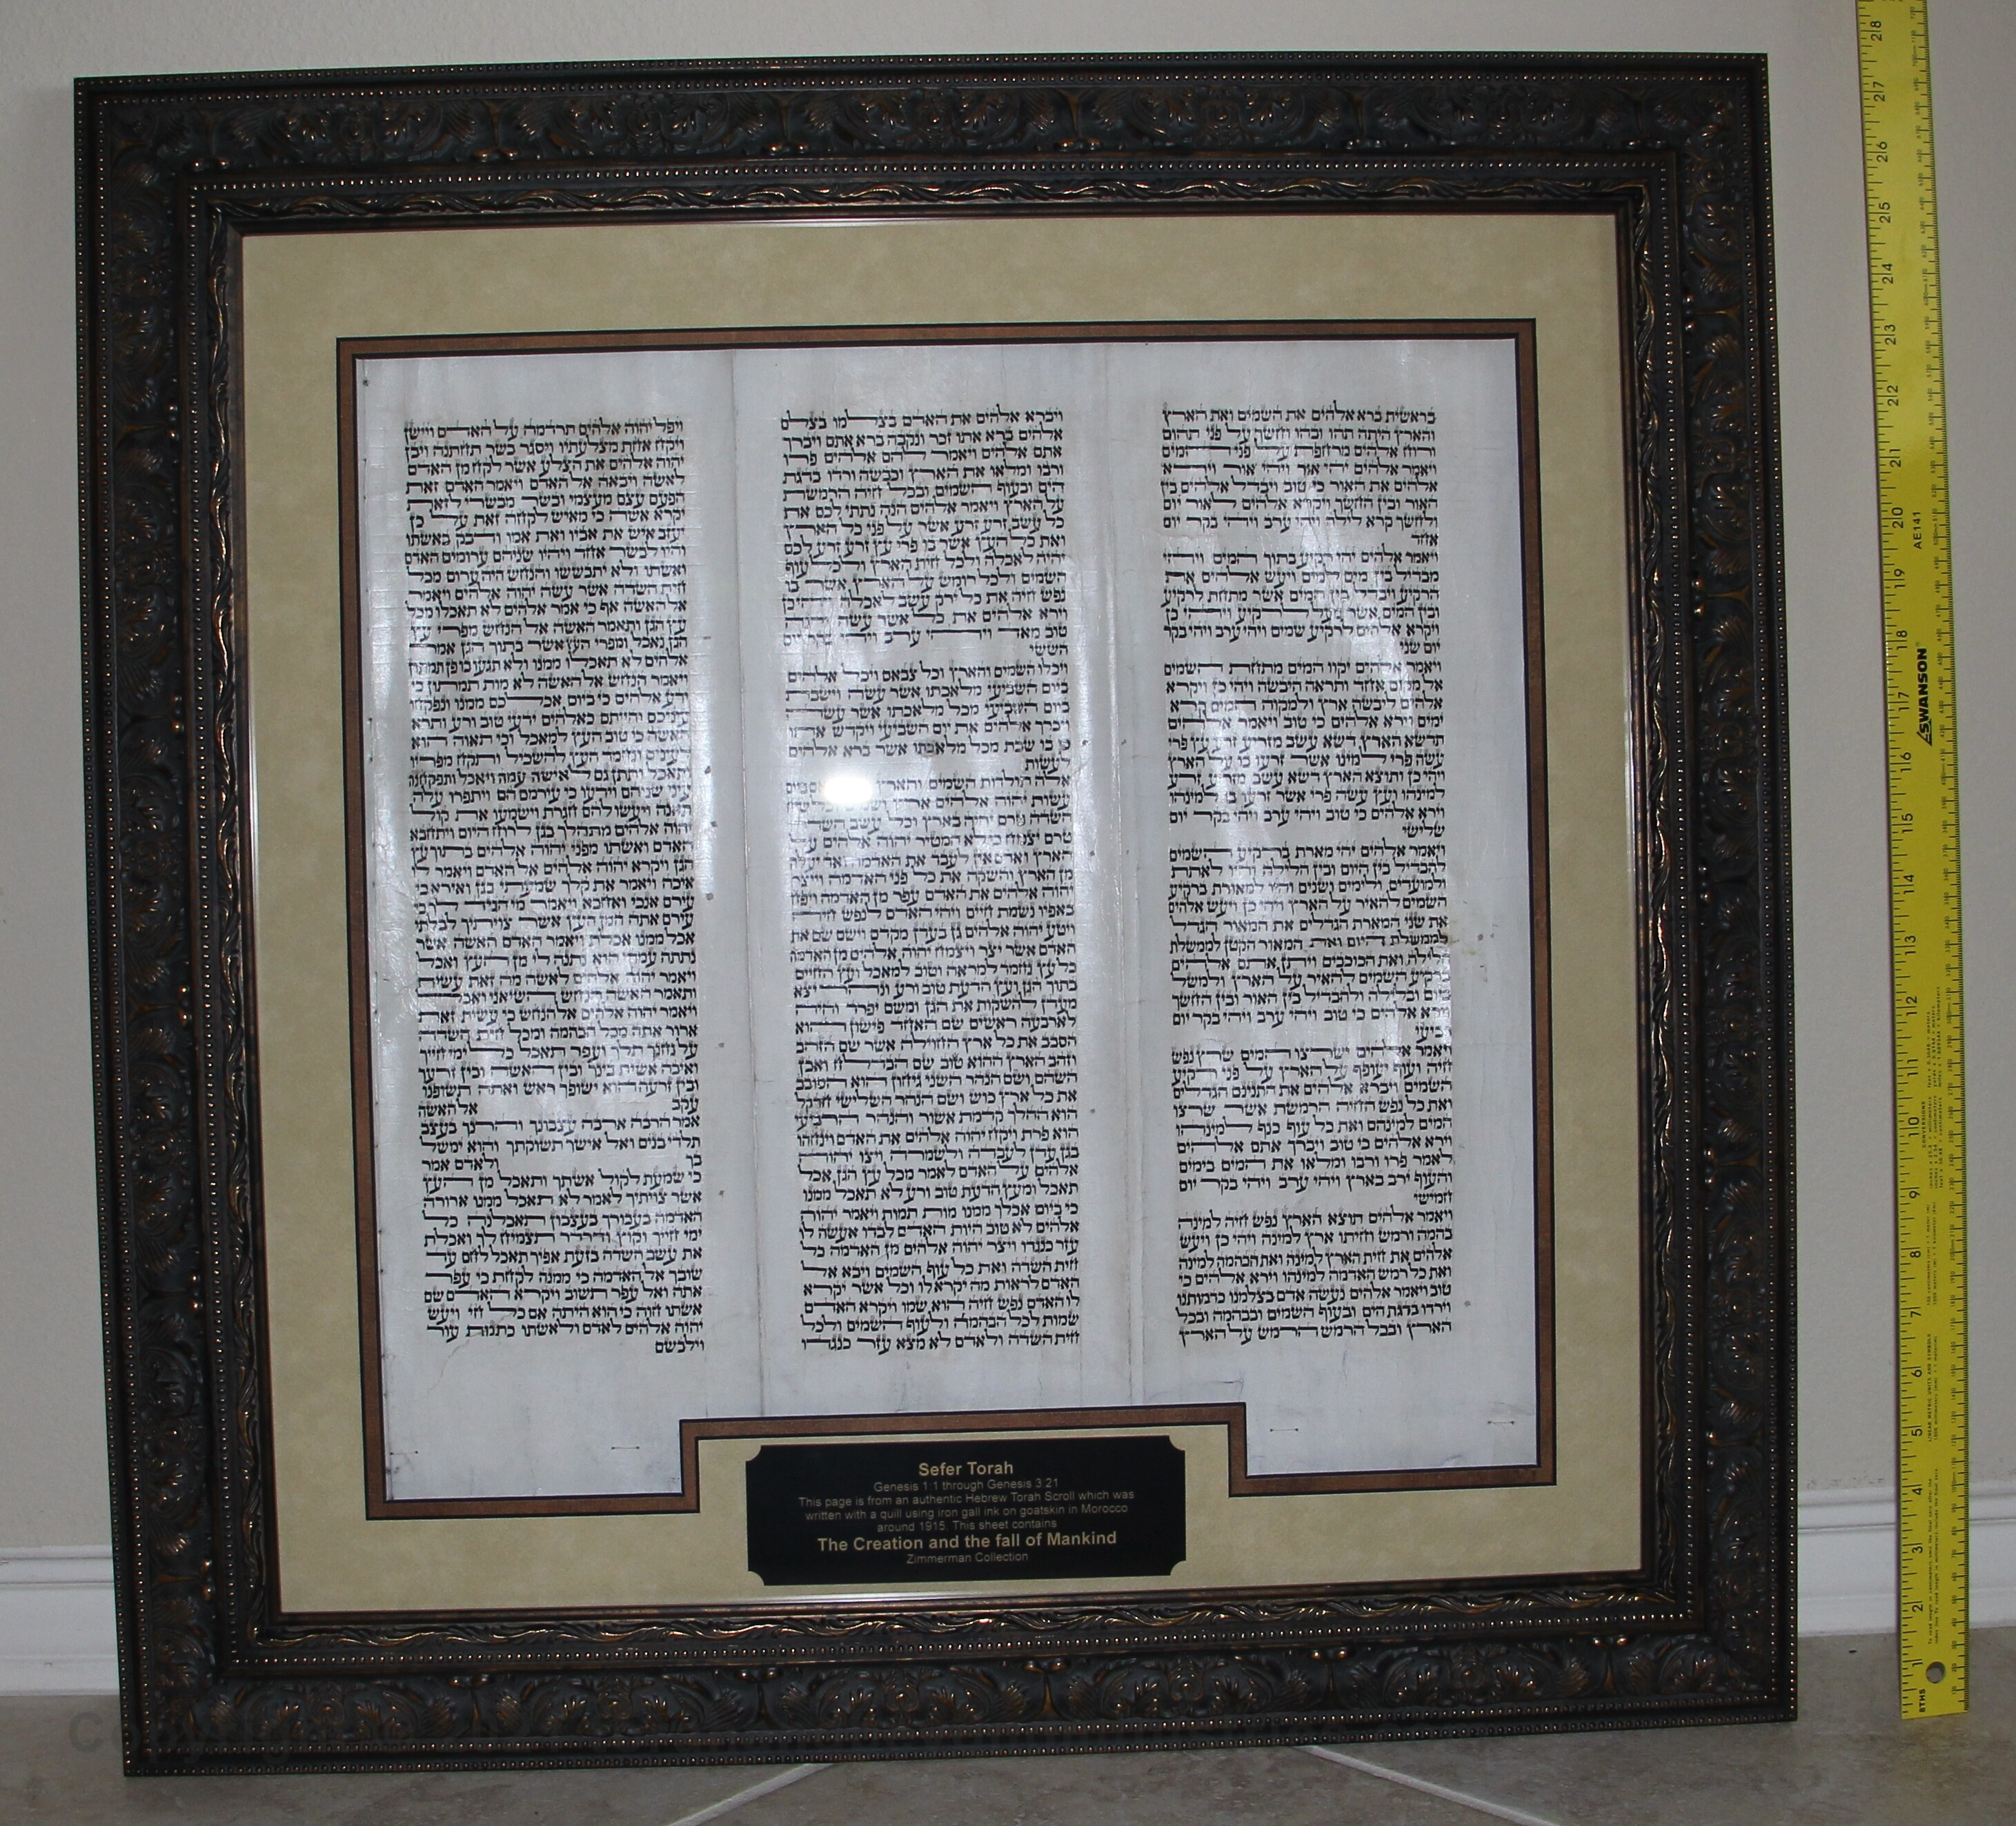 Torah Scroll from Morocco showing sheet 1, Creation and the fall of mankind